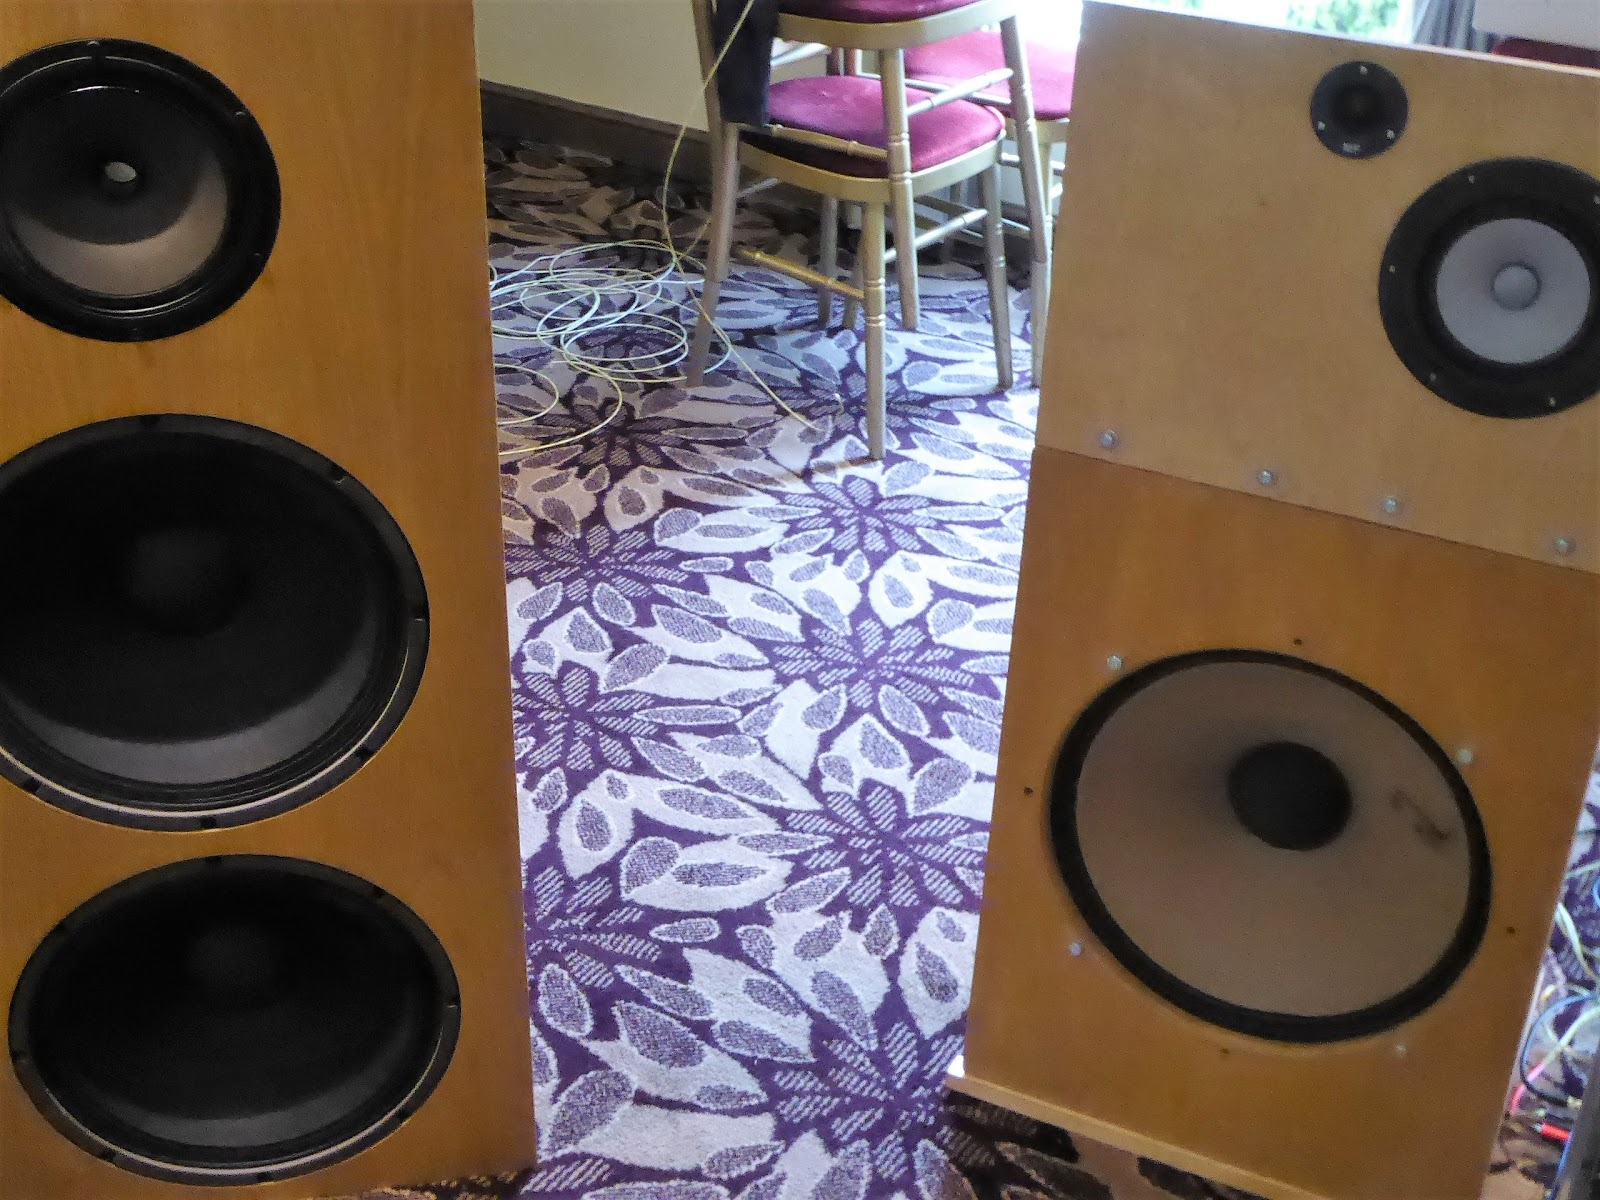 Rays Retirement Owston A Visit To Diy Audio Land How Build Speaker Box Amp Many In The Community Also Loud Speakers Since Of Us Dont Have Room For Workshops Large Boxes Turned Building